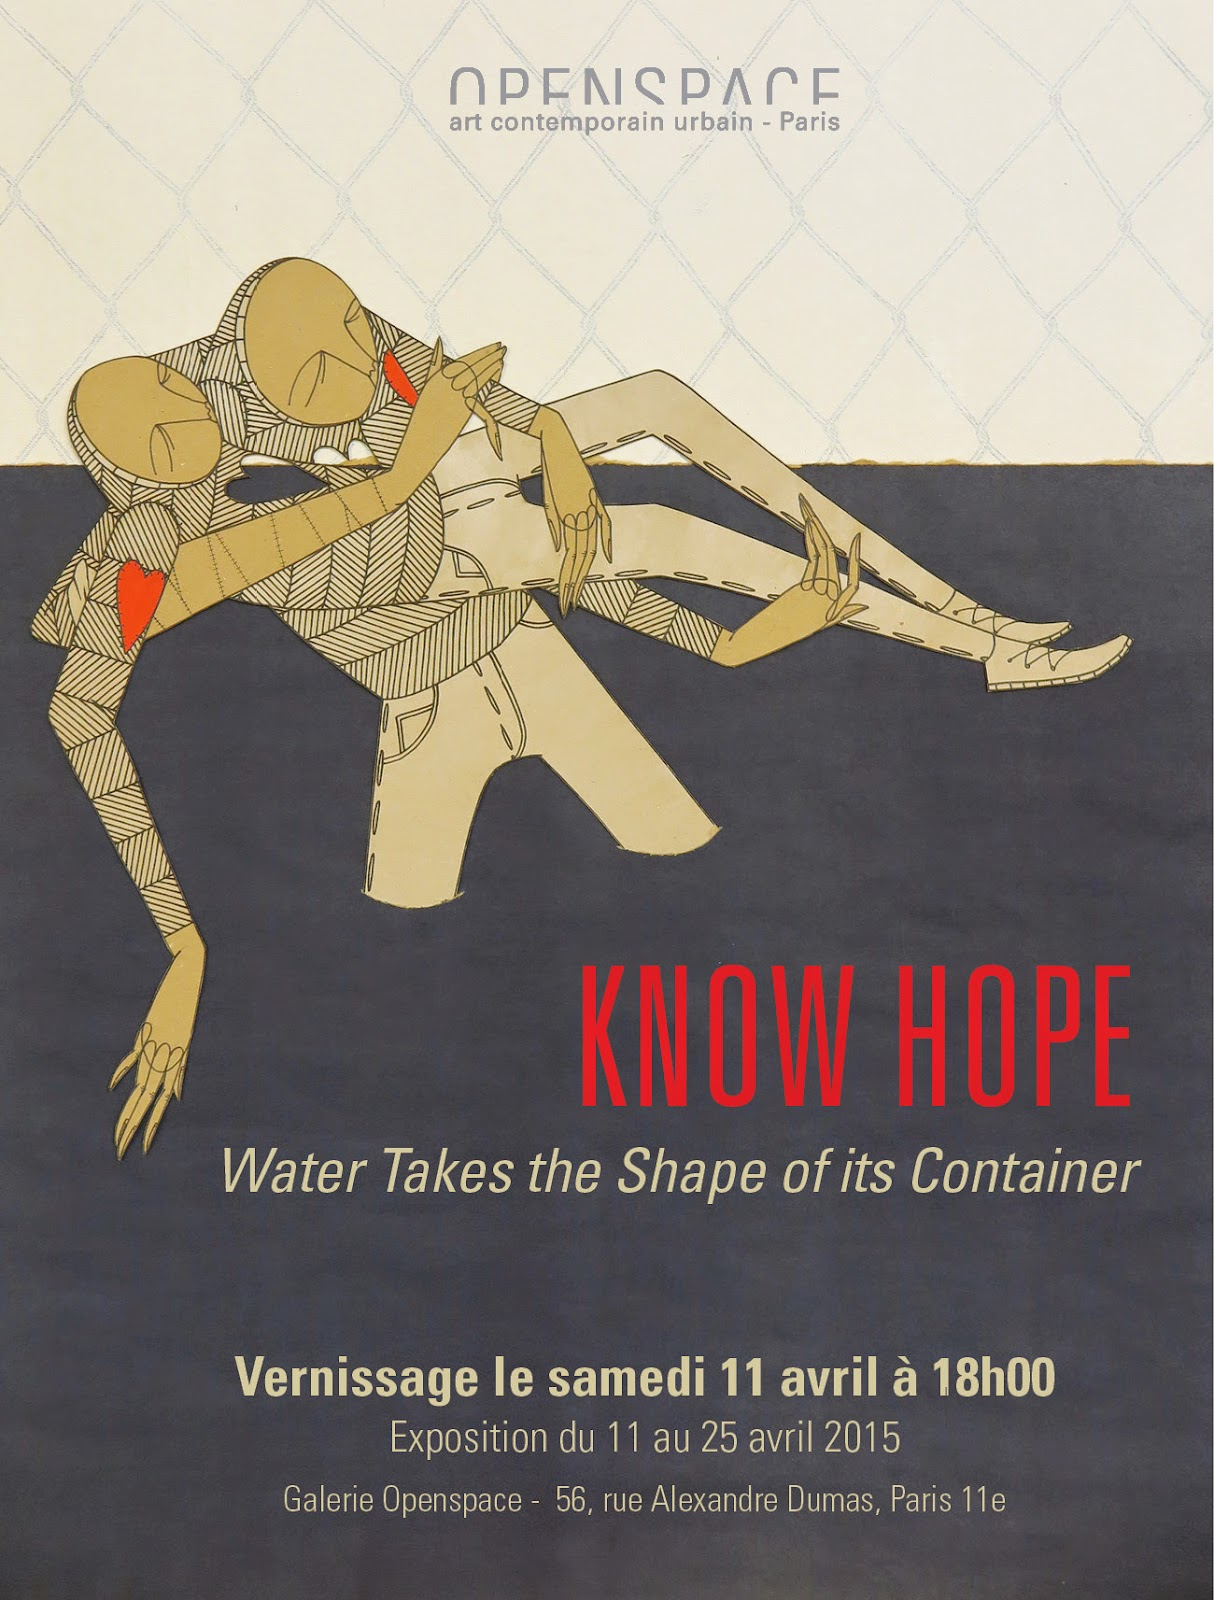 "Our friend Know Hope is getting ready to open his newest solo exhibition ""Water Takes the Shape of its Container"" at the Openspace gallery in Paris."